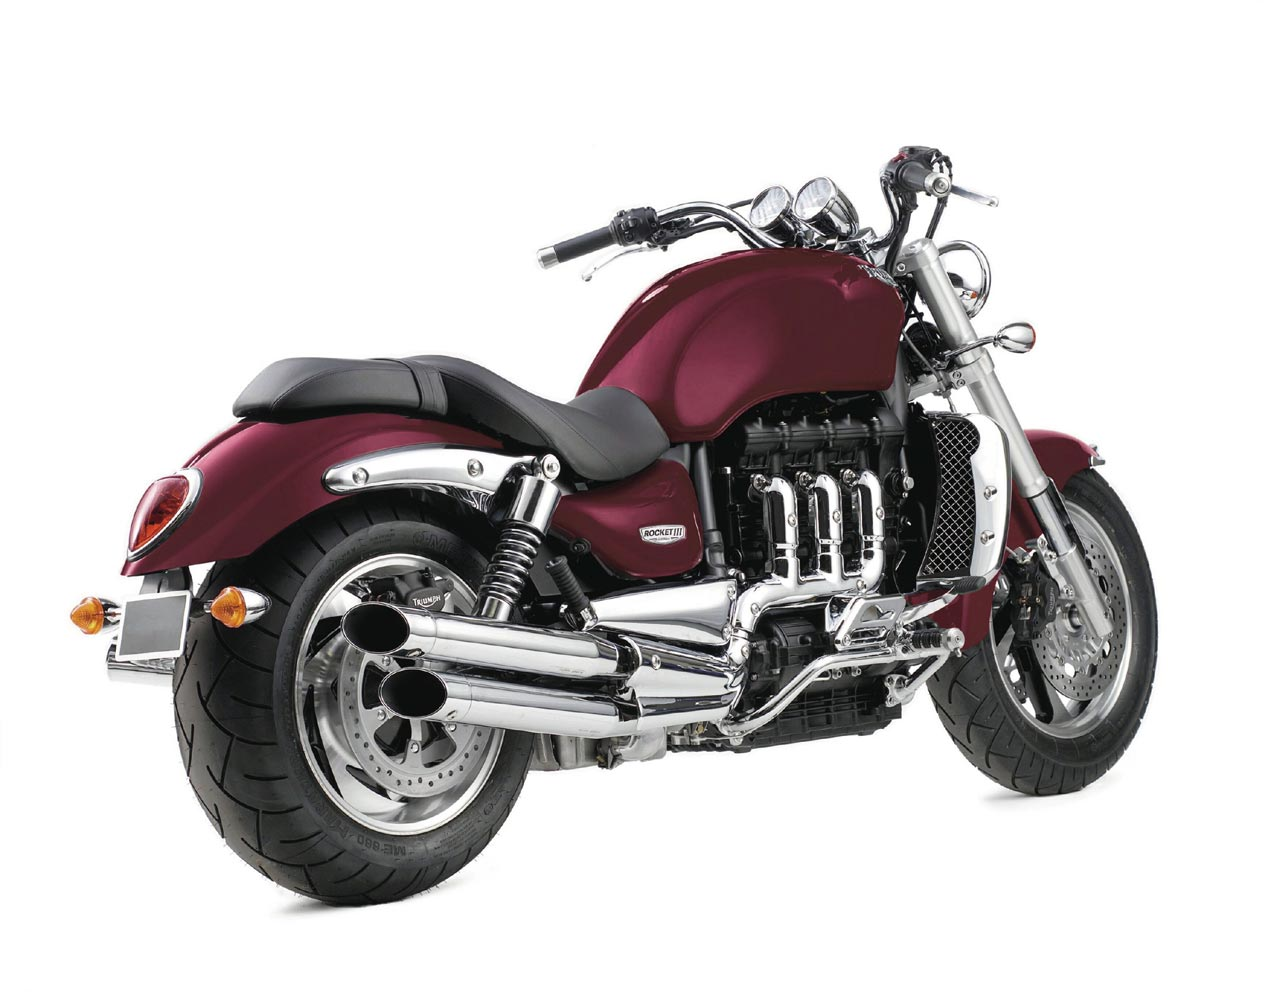 Triumph Rocket III 2006 images #125810